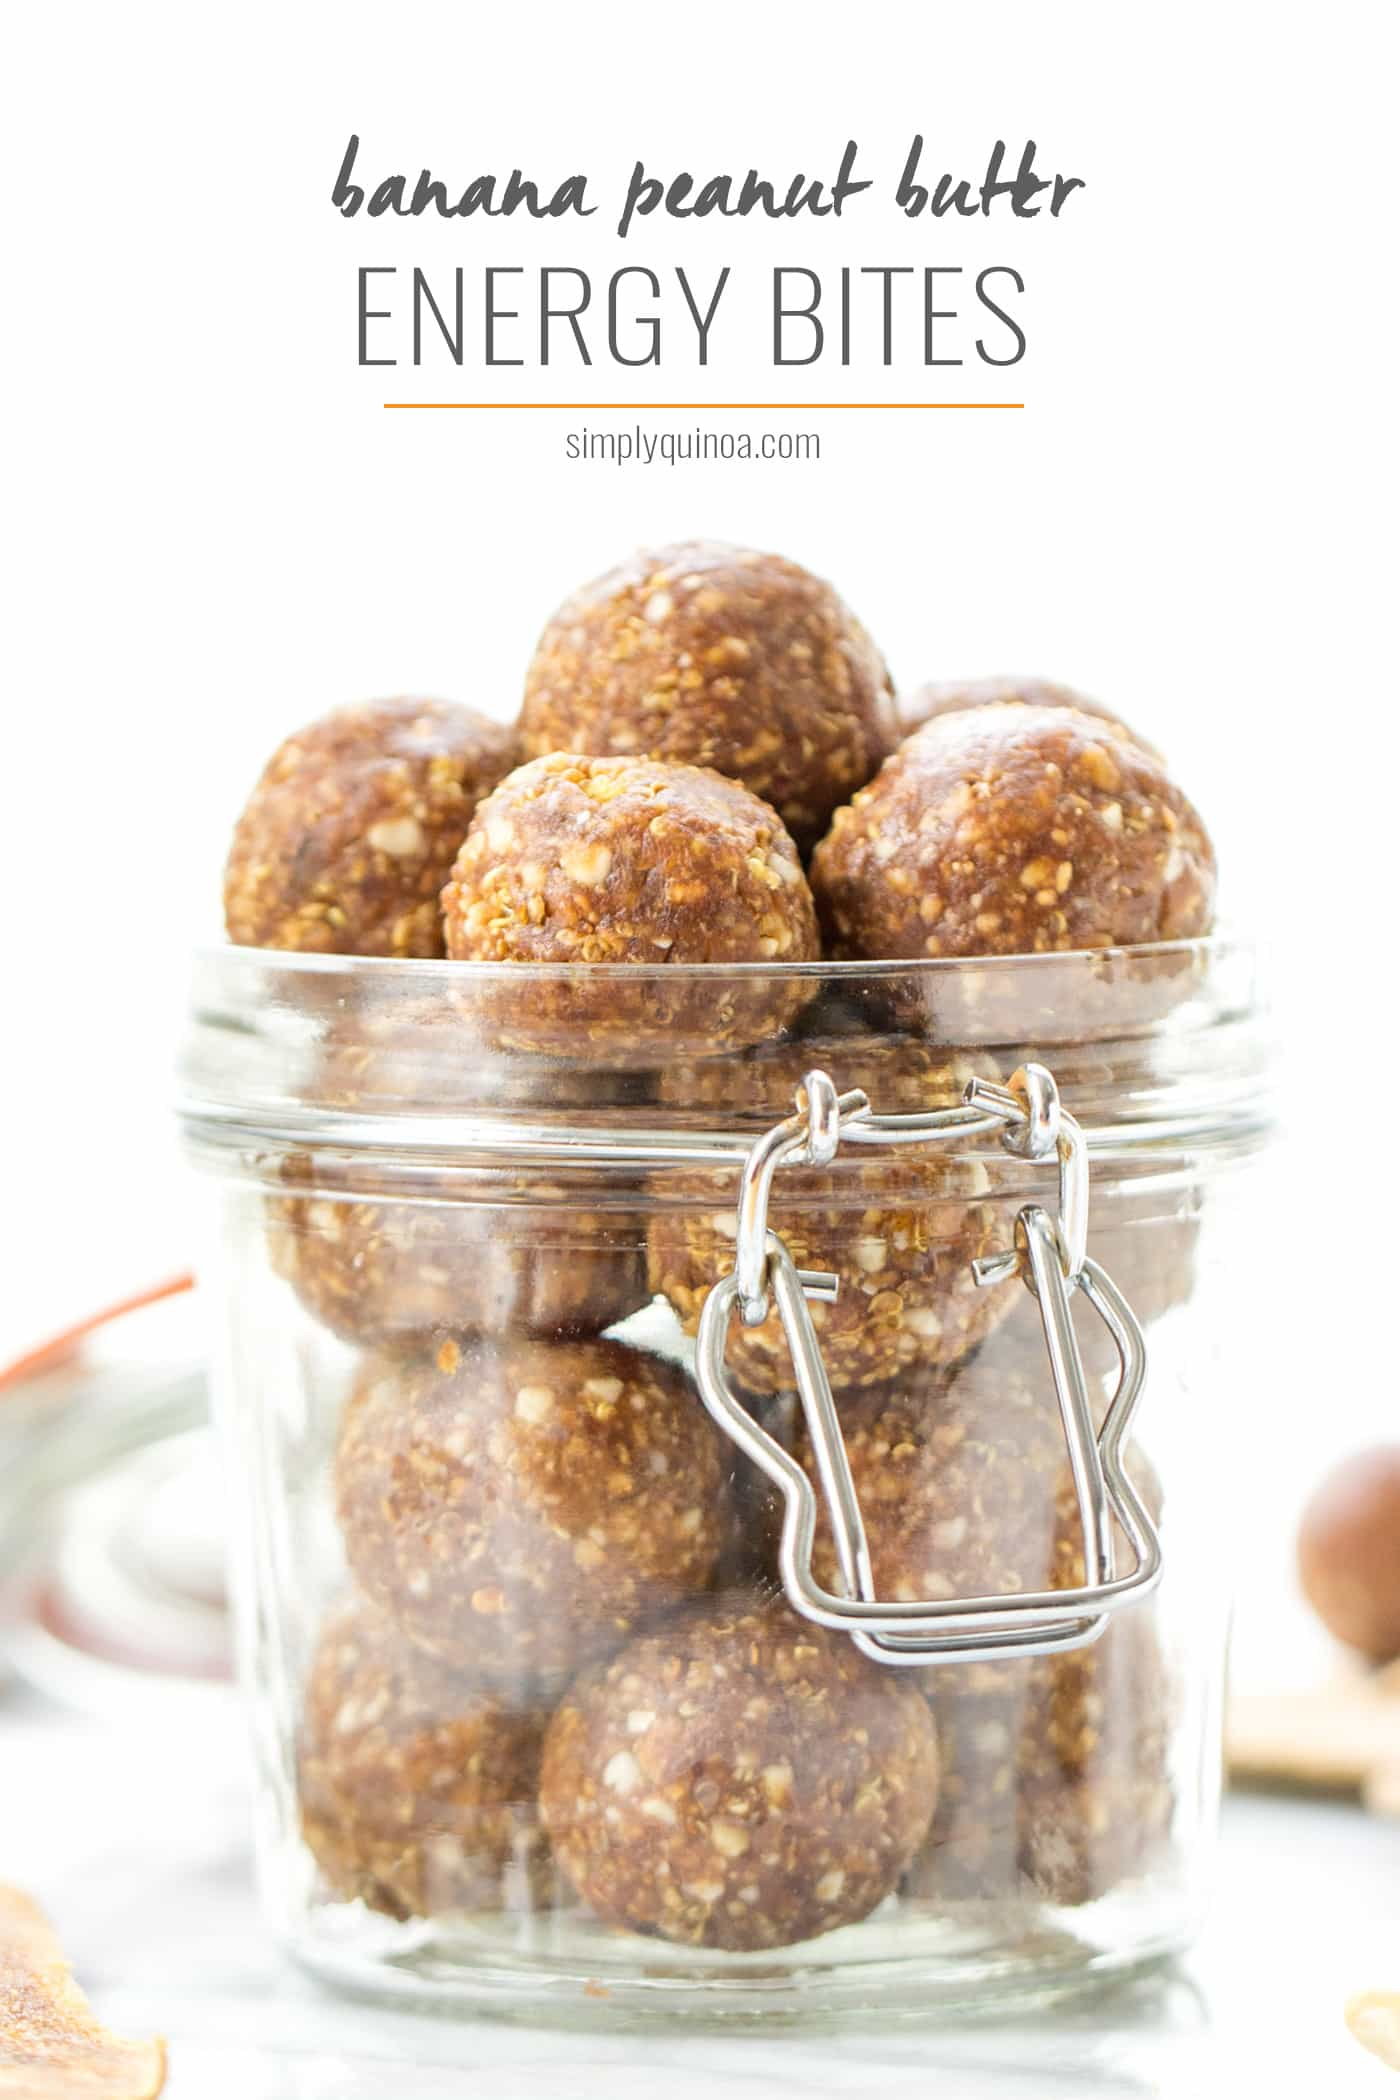 The perfect snack >> Banana Peanut Butter Energy Bites!! made with only a few simple ingredients, they're healthy, energizing and DELICIOUS!